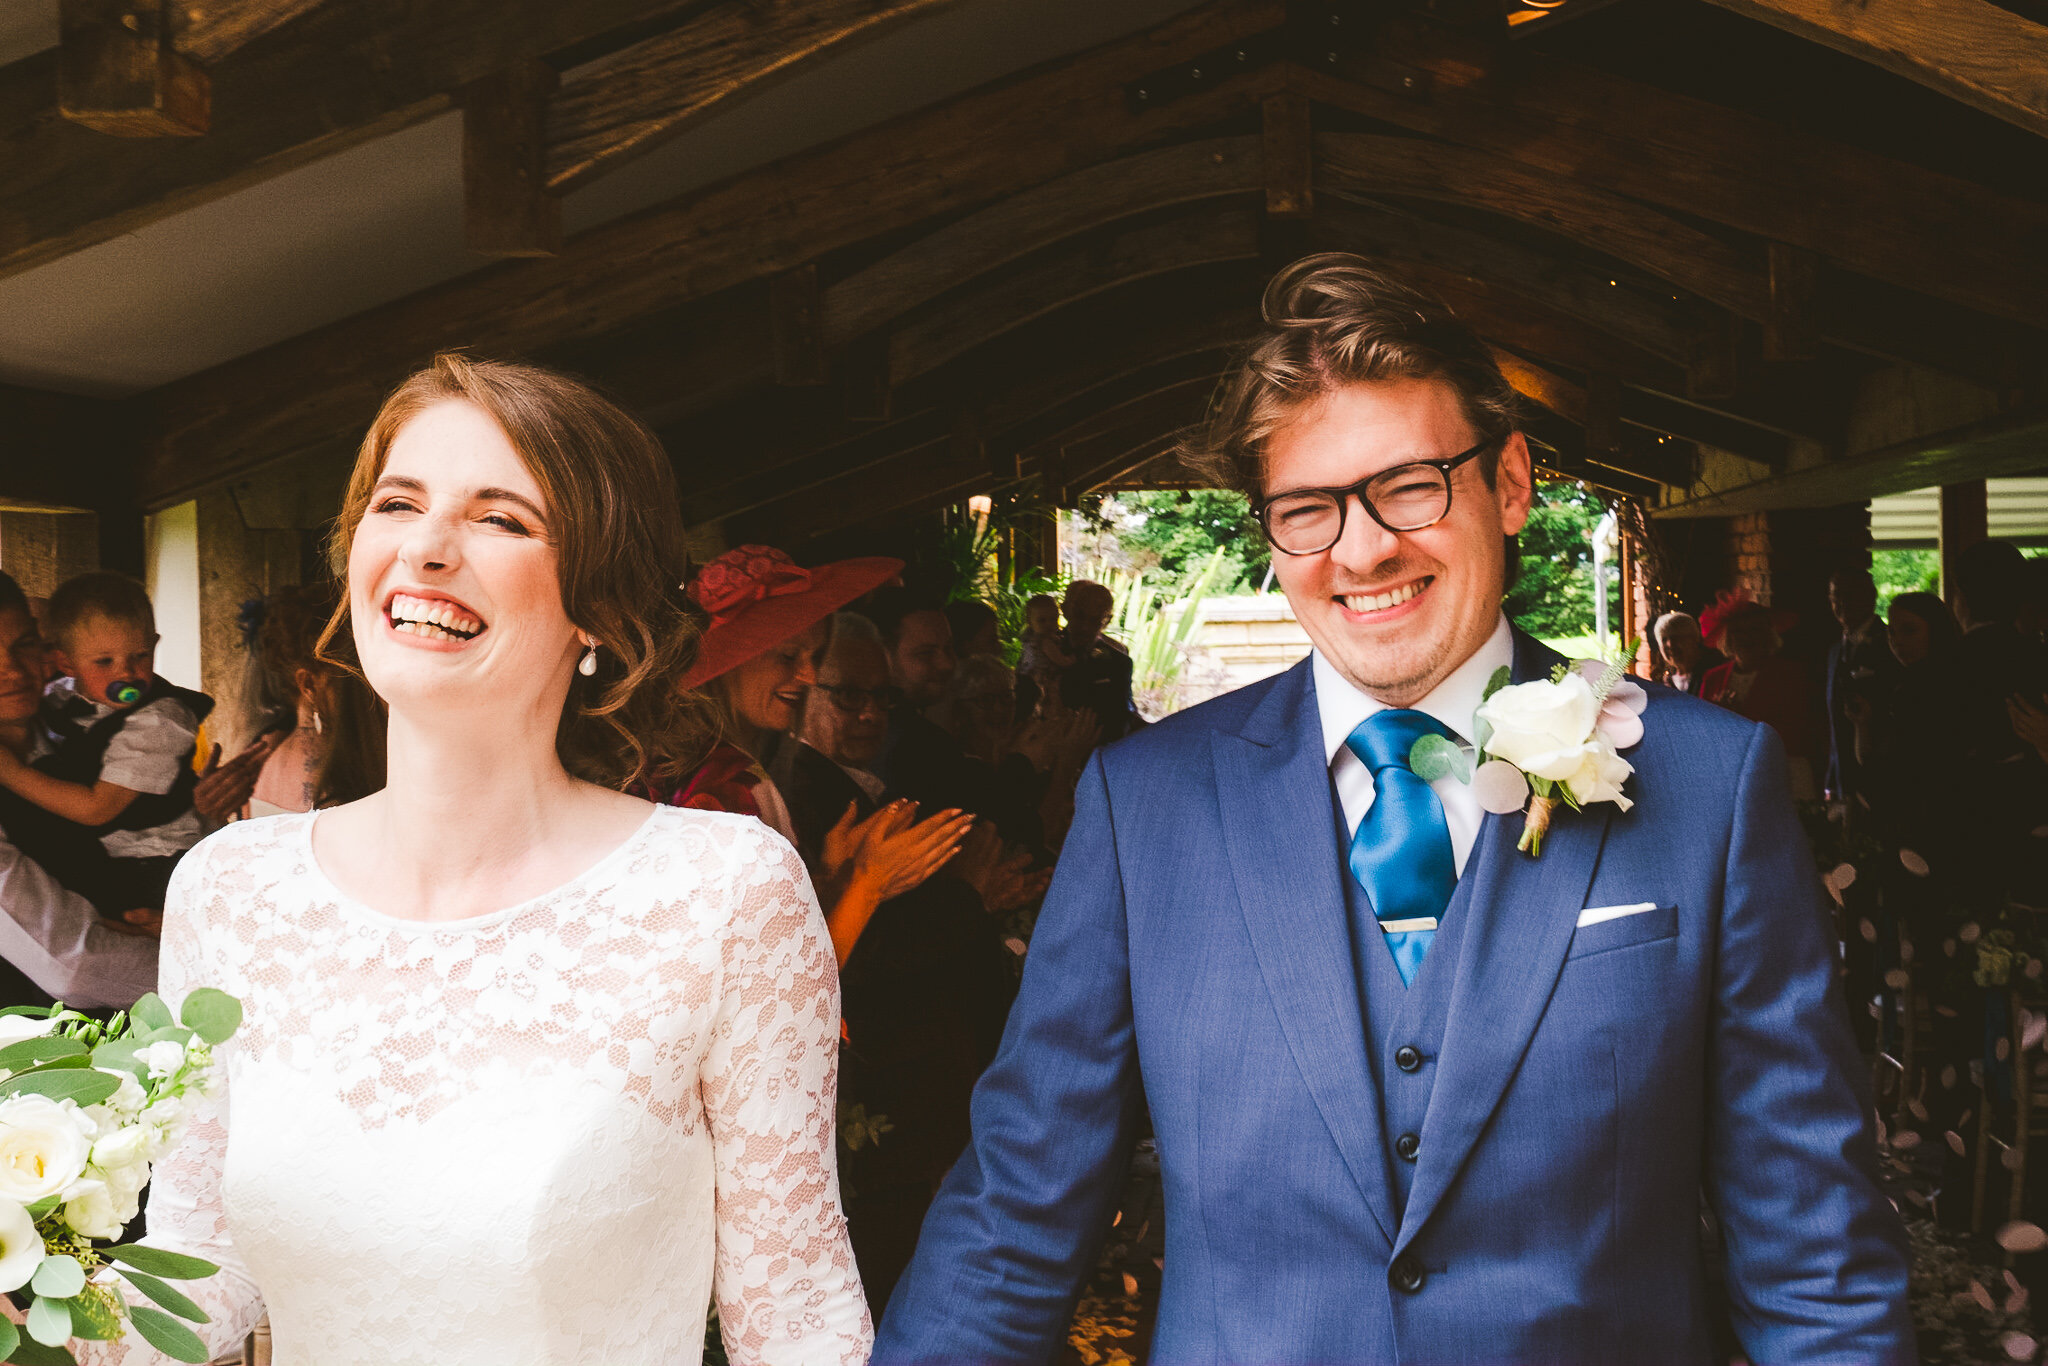 Alice and Andrew have the biggest smiles as they emerge from their wedding ceremony at Newton Hall in Northumberland